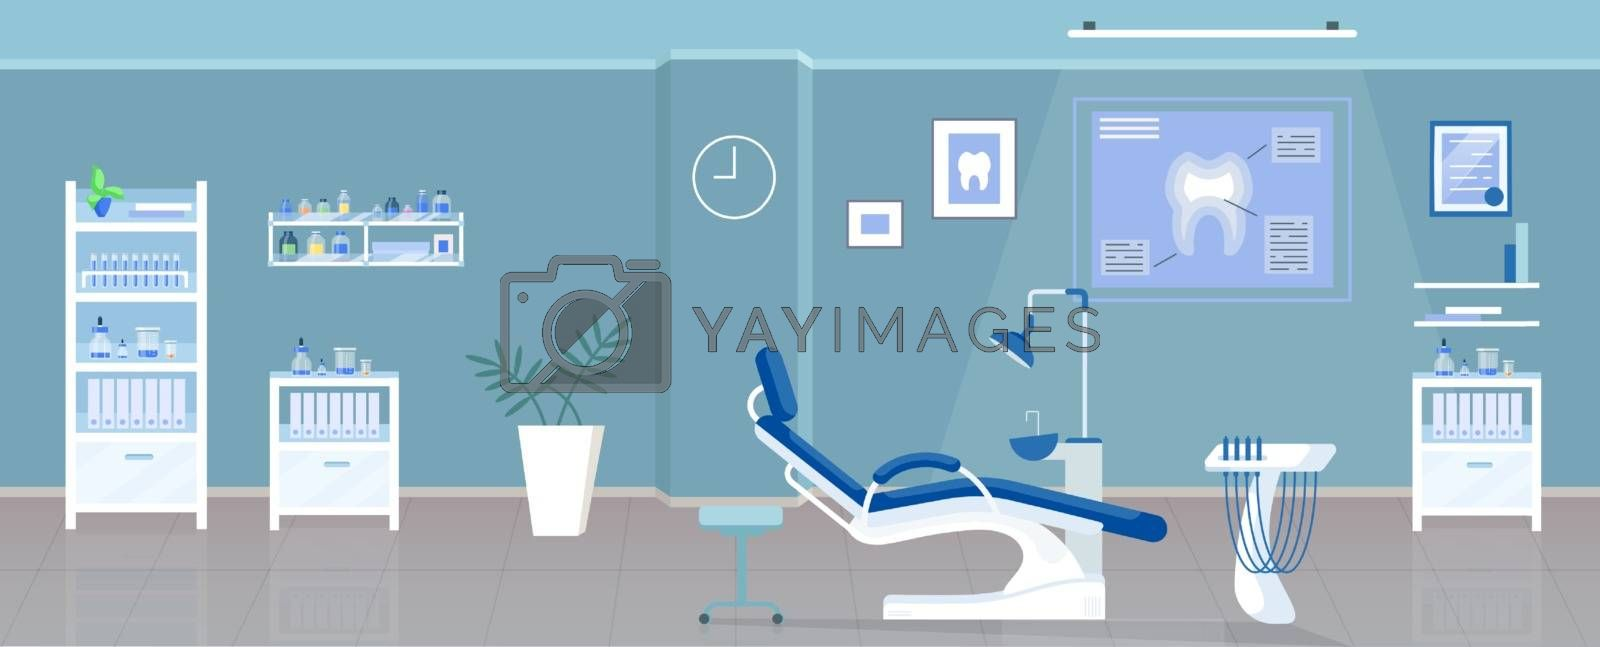 Dental office flat color vector illustration. Stomatological clinic, odontology room 2D cartoon interior design with orthodontic appliances on background. Stomatologist workplace with dental chair